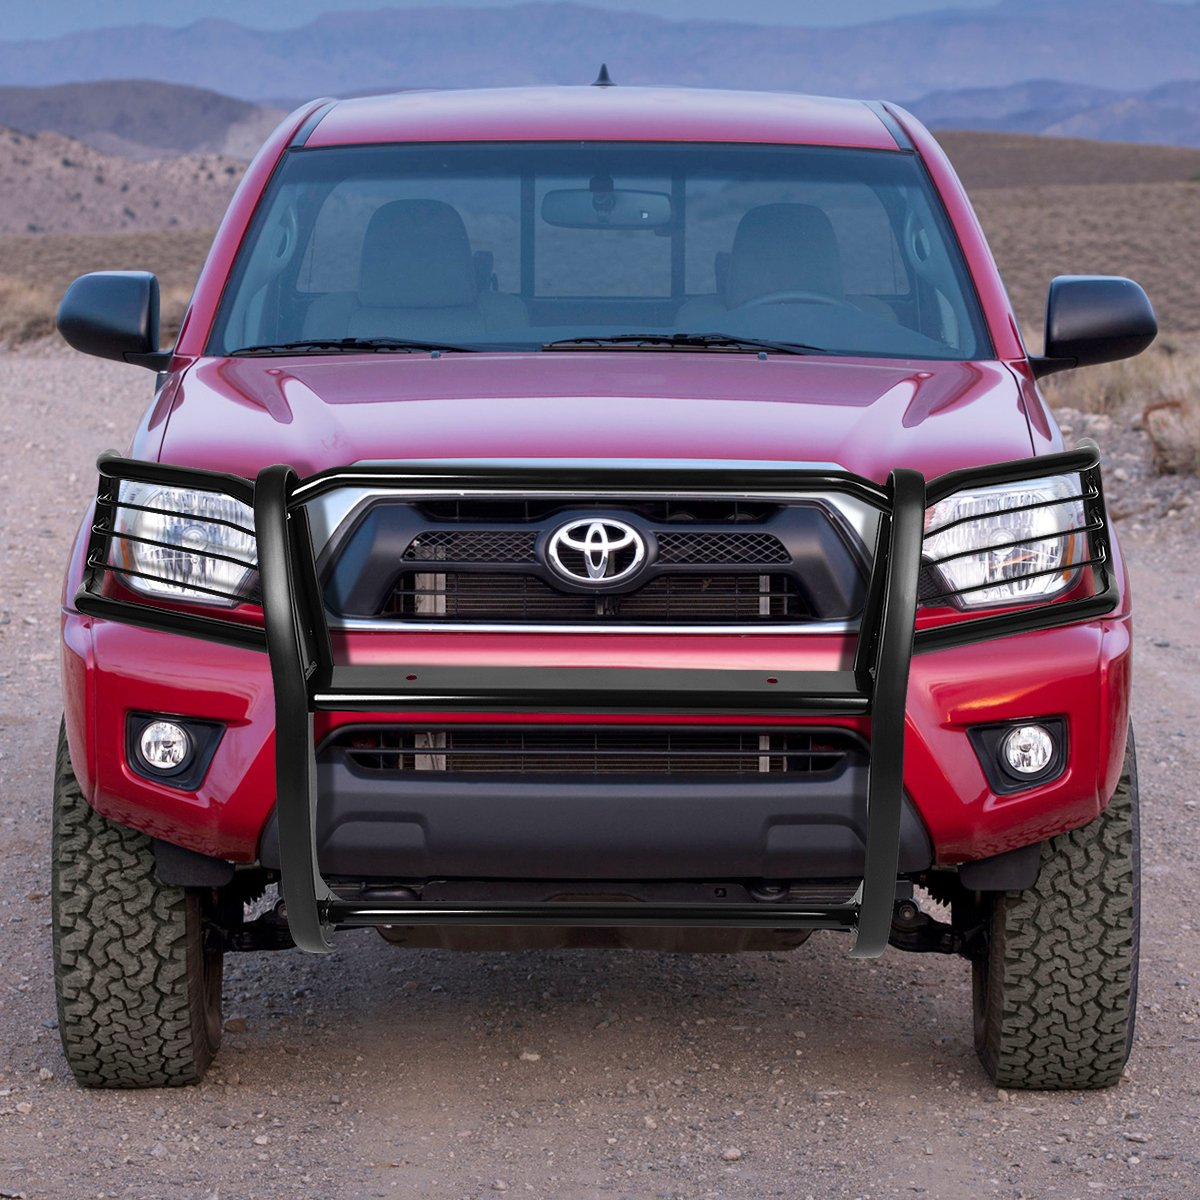 Black For 05-15 Tacoma 2nd Gen Rock Crawler 1.5 inches OD Front Bumper Protector Brush Grille Guard